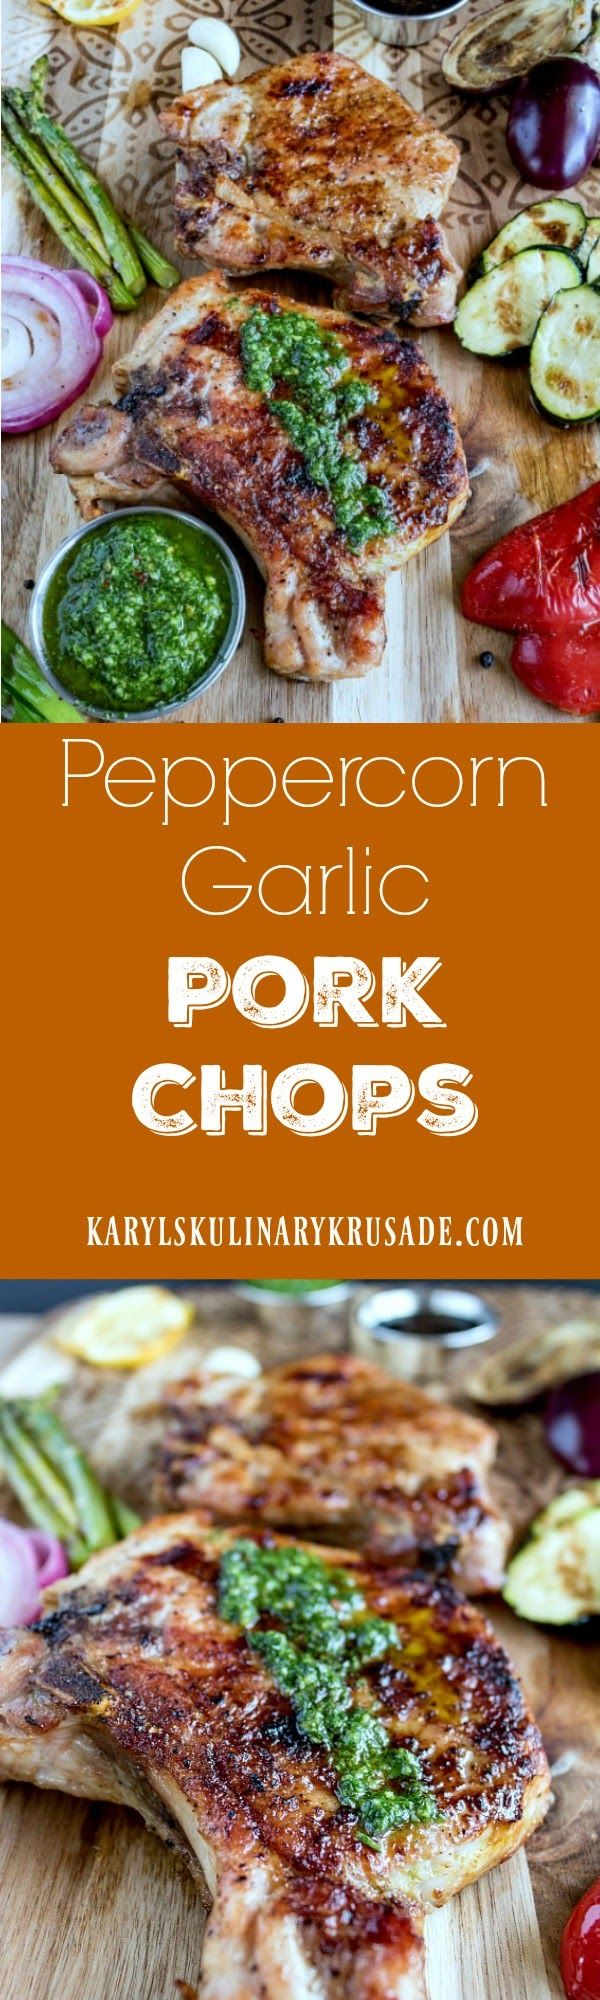 Peppercorn Garlic Pork Chops. Thick-cut pork chops, seasoned and seared in butter, and finished on the grill. These pork chops, combined with assorted grilled pork chops, will be a hit with your entire family